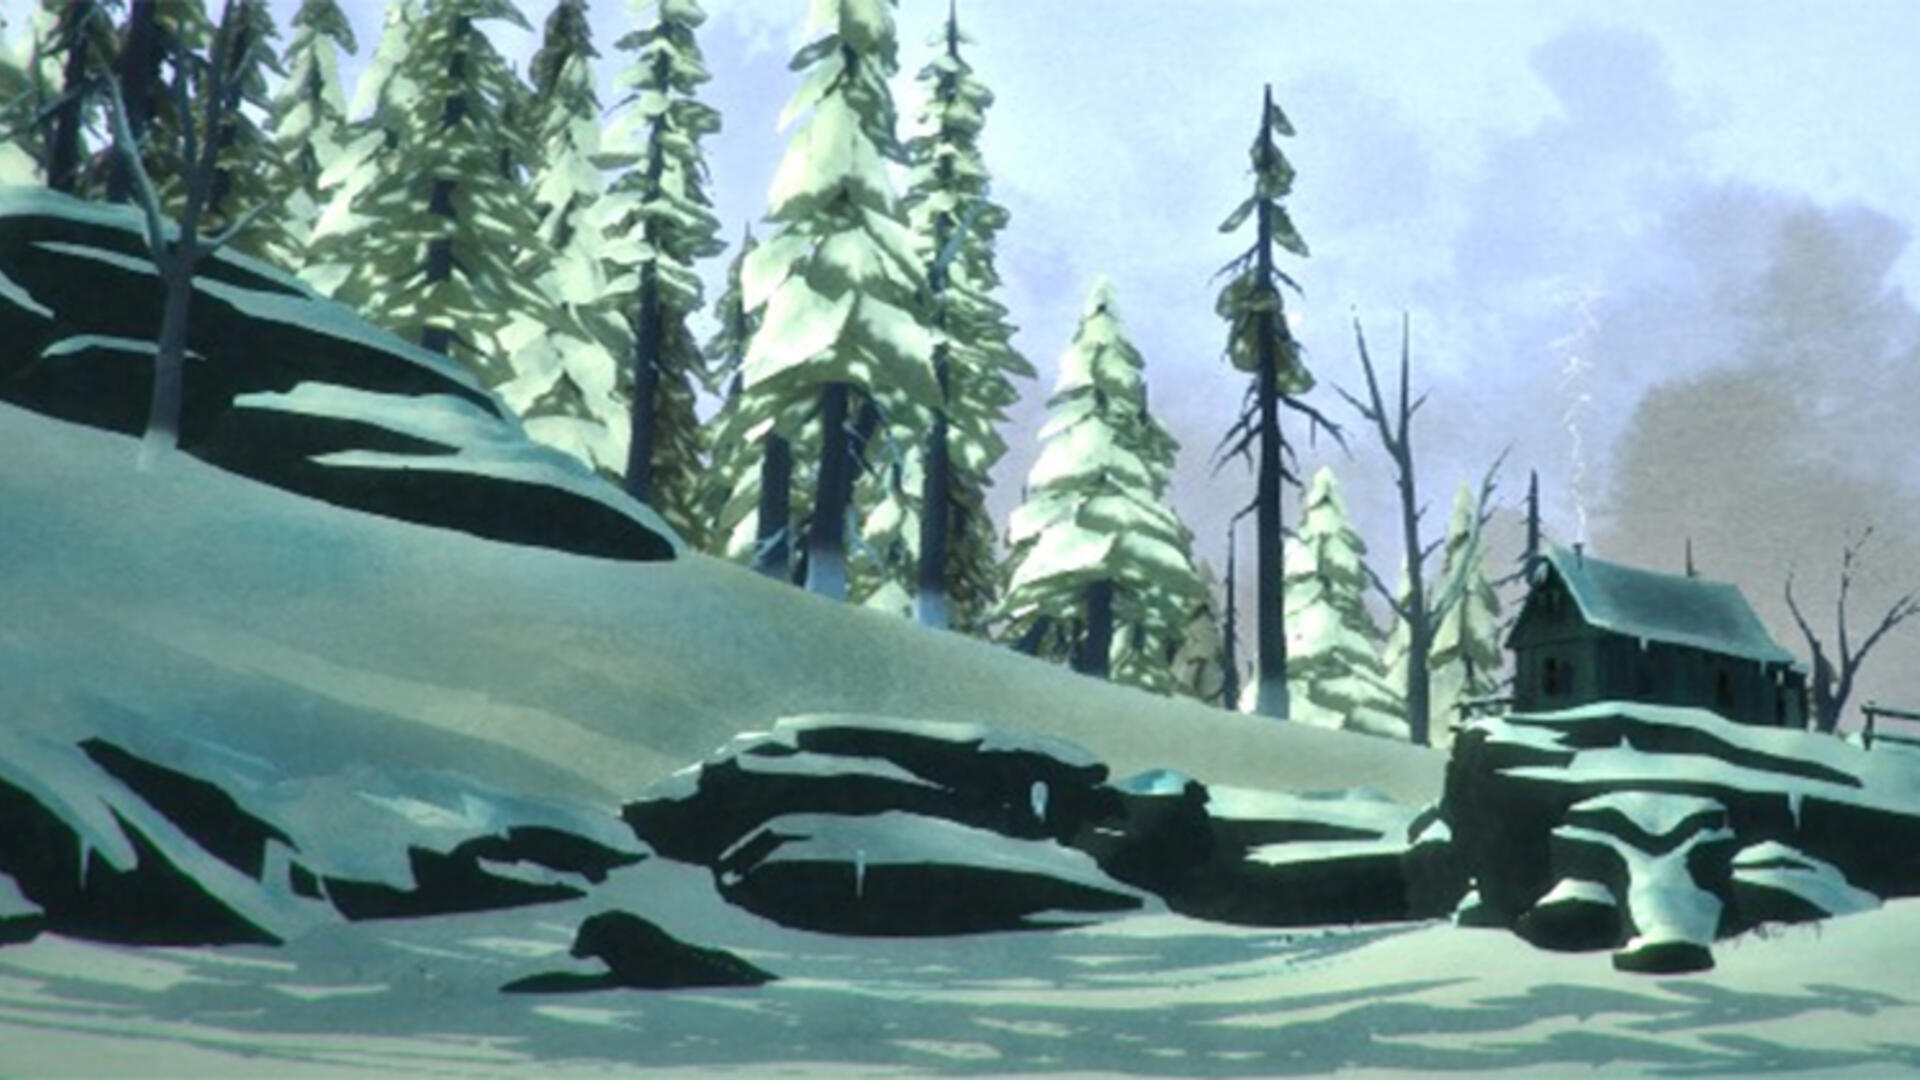 USstreamer: Brave the Frozen North with Bob in The Long Dark [Update: Now Archived]